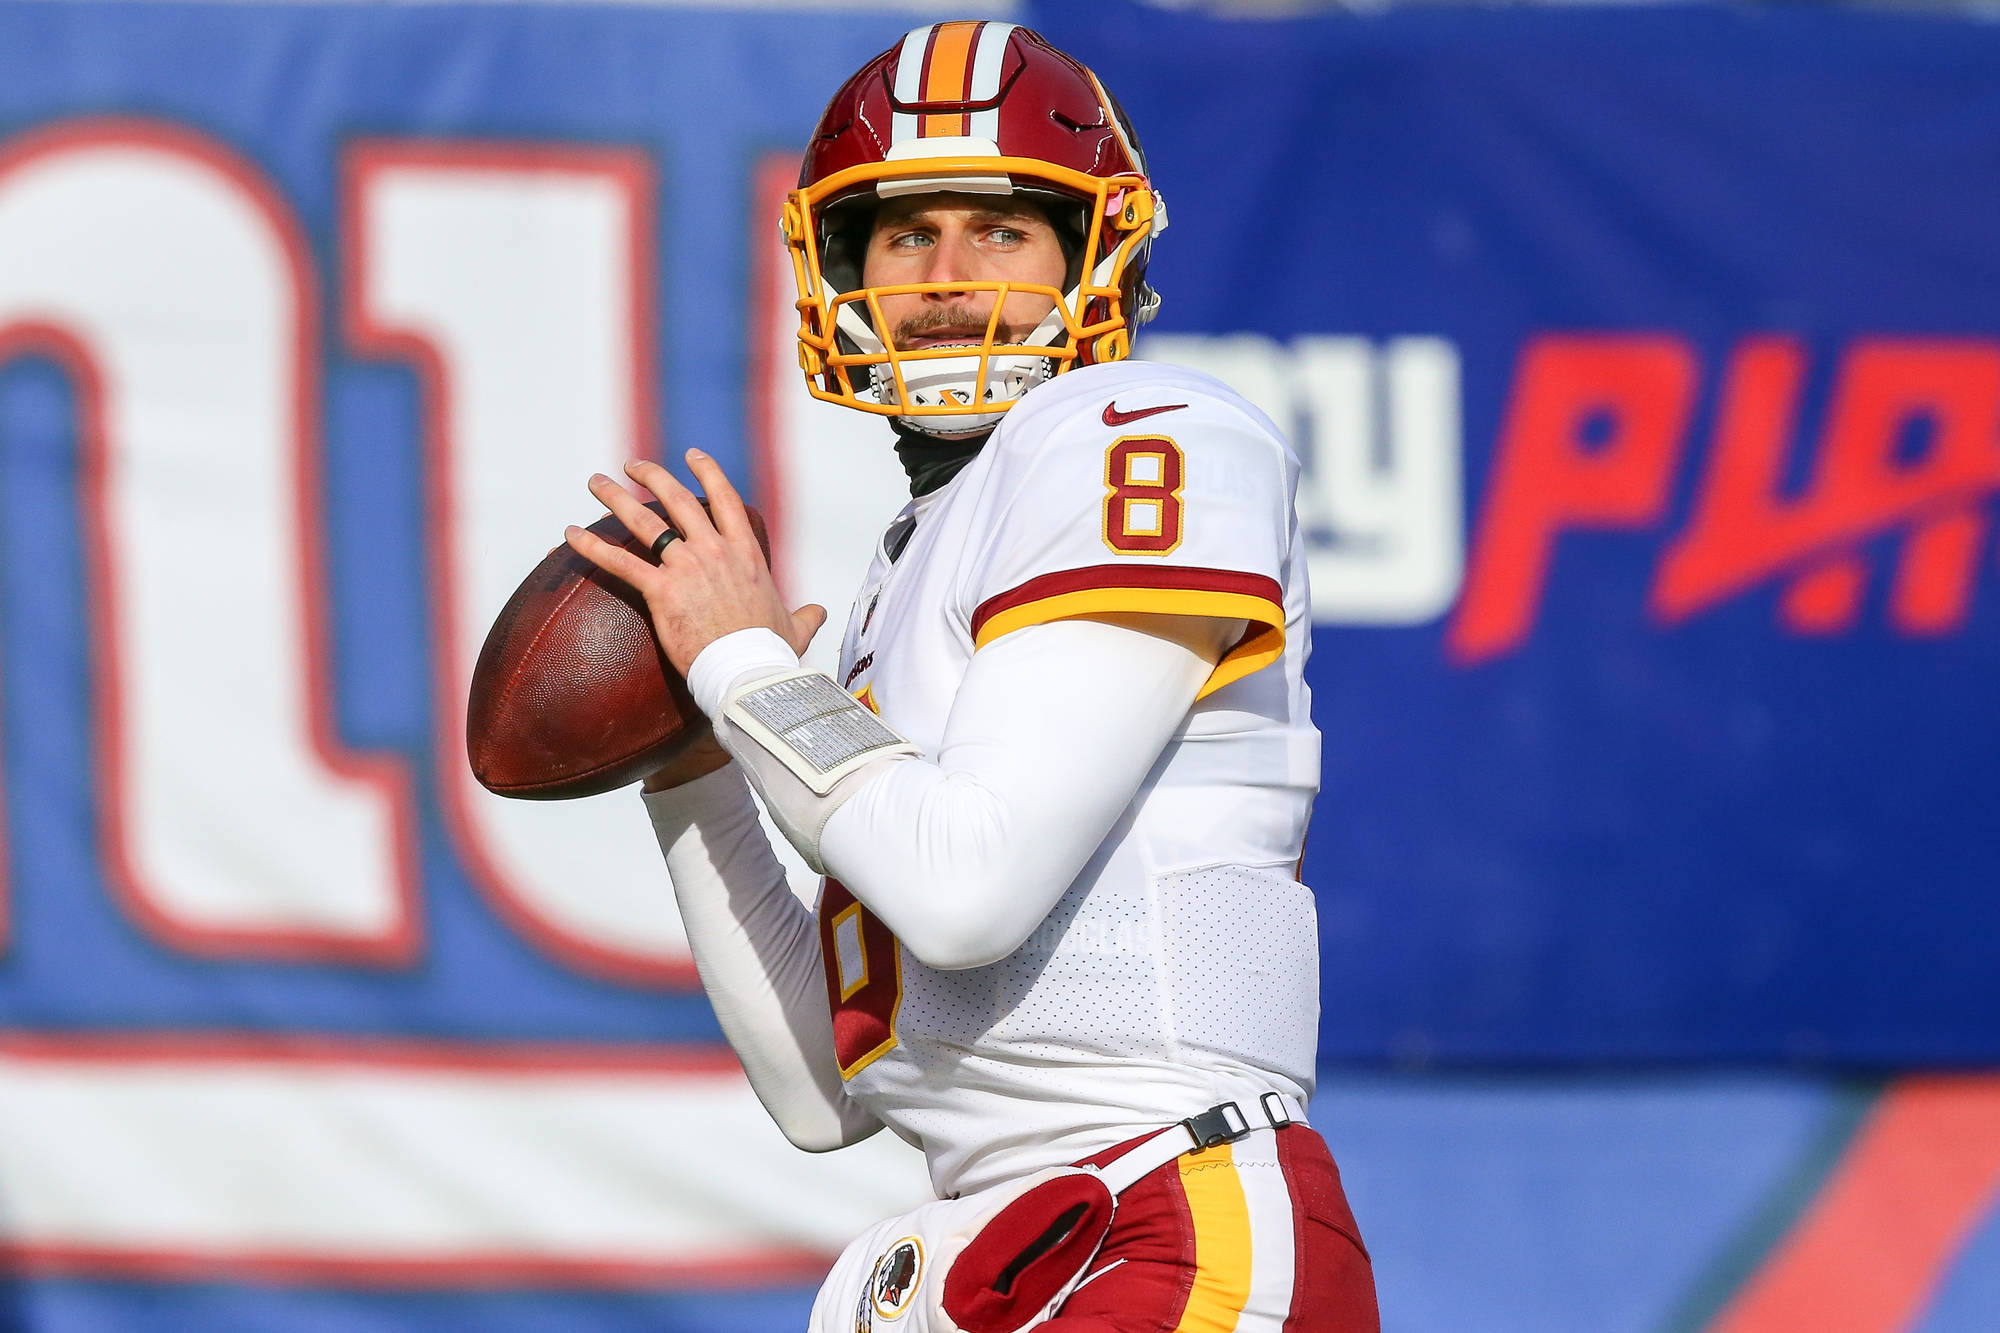 Kansas City Chiefs trade QB Smith to Washington